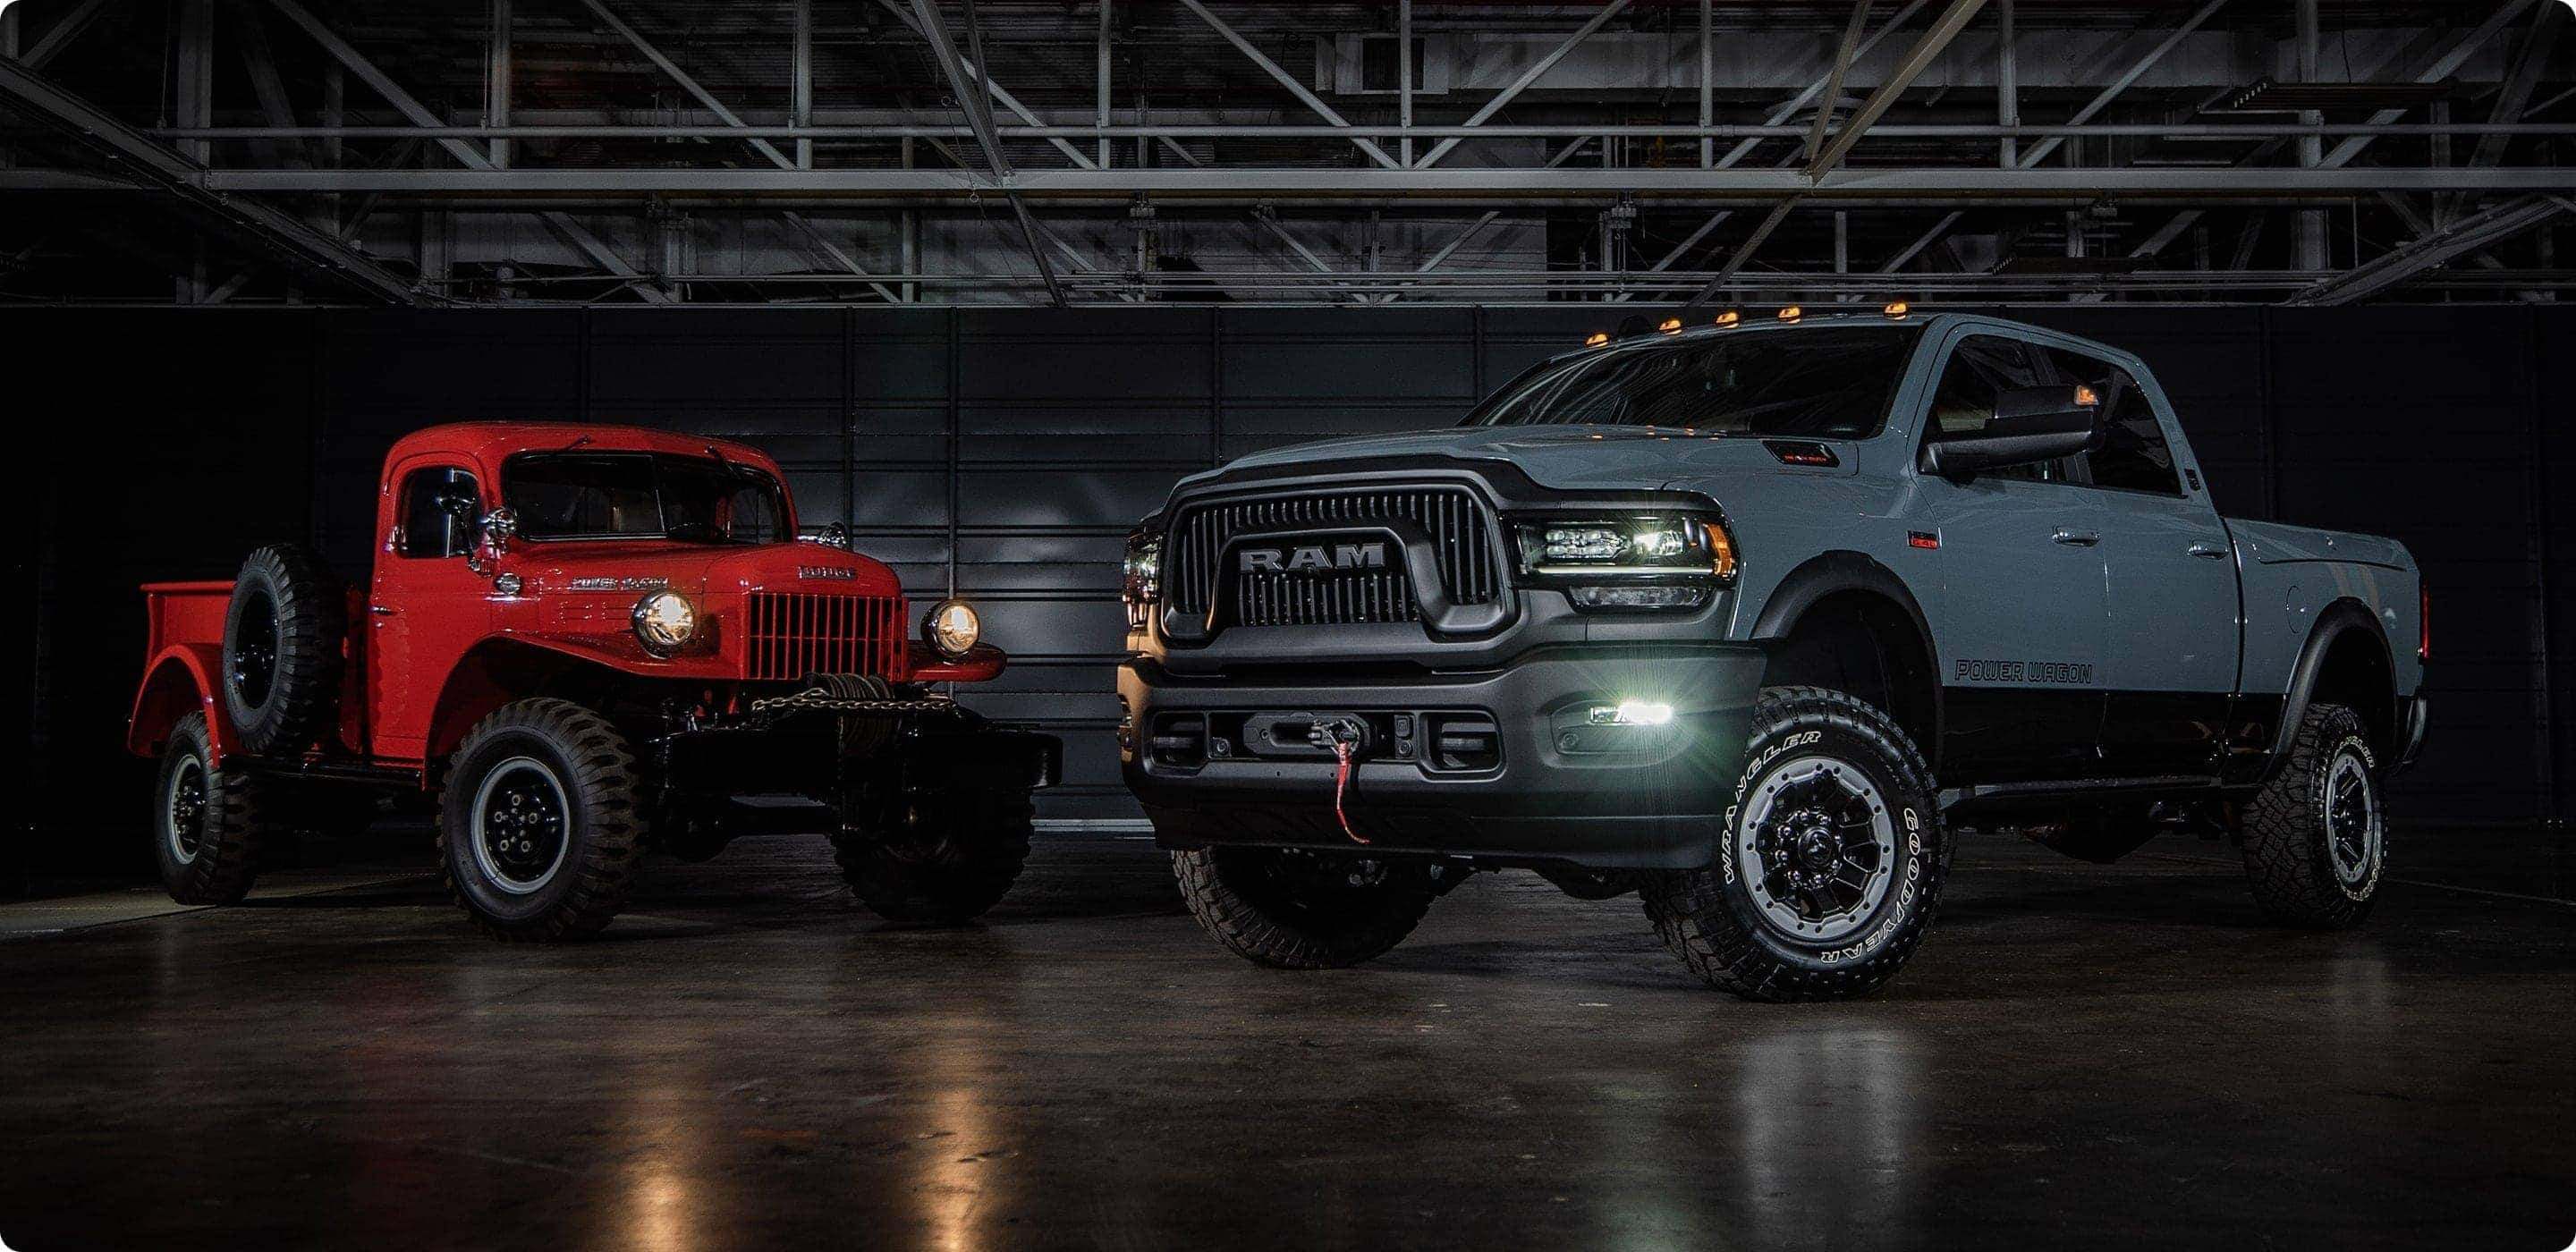 Display A classic 1954 Ram Power Wagon and the 2021 Ram 2500 Power Wagon 75th Anniversary Edition, both with their headlamps on, parked in a darkened industrial garage.